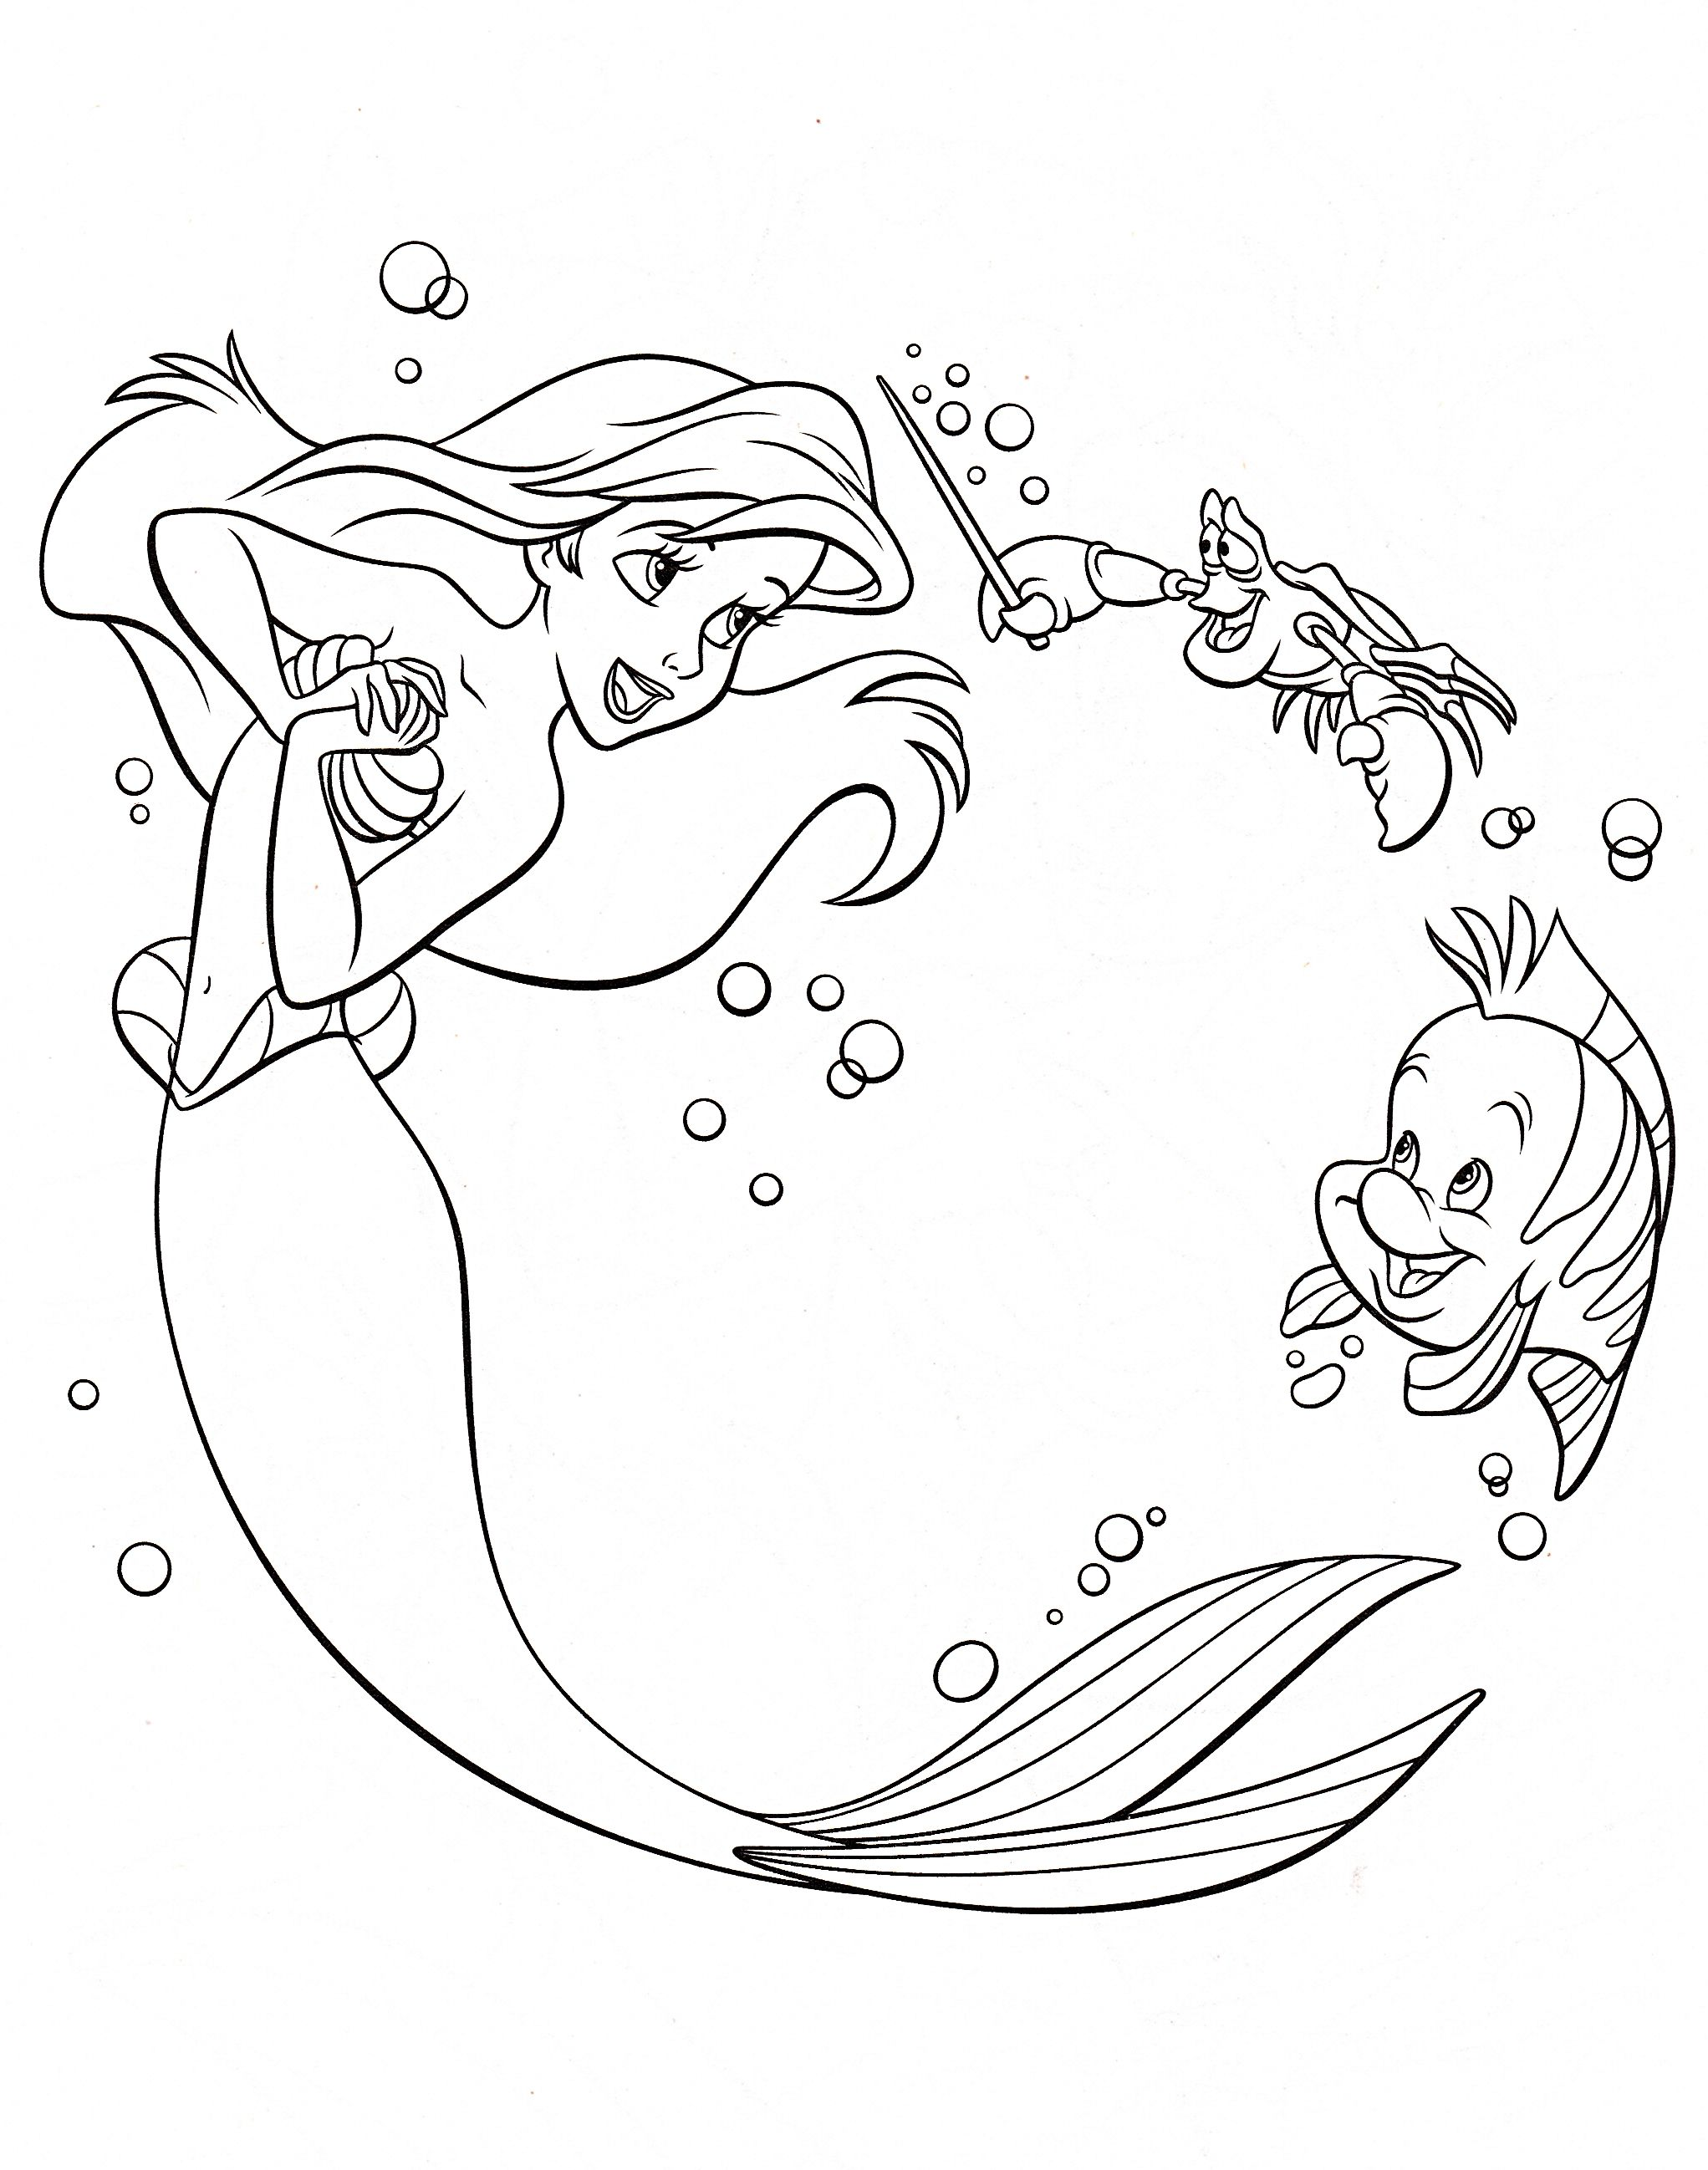 Walt Disney Coloring Pages Princess Aquata King Triton Princess